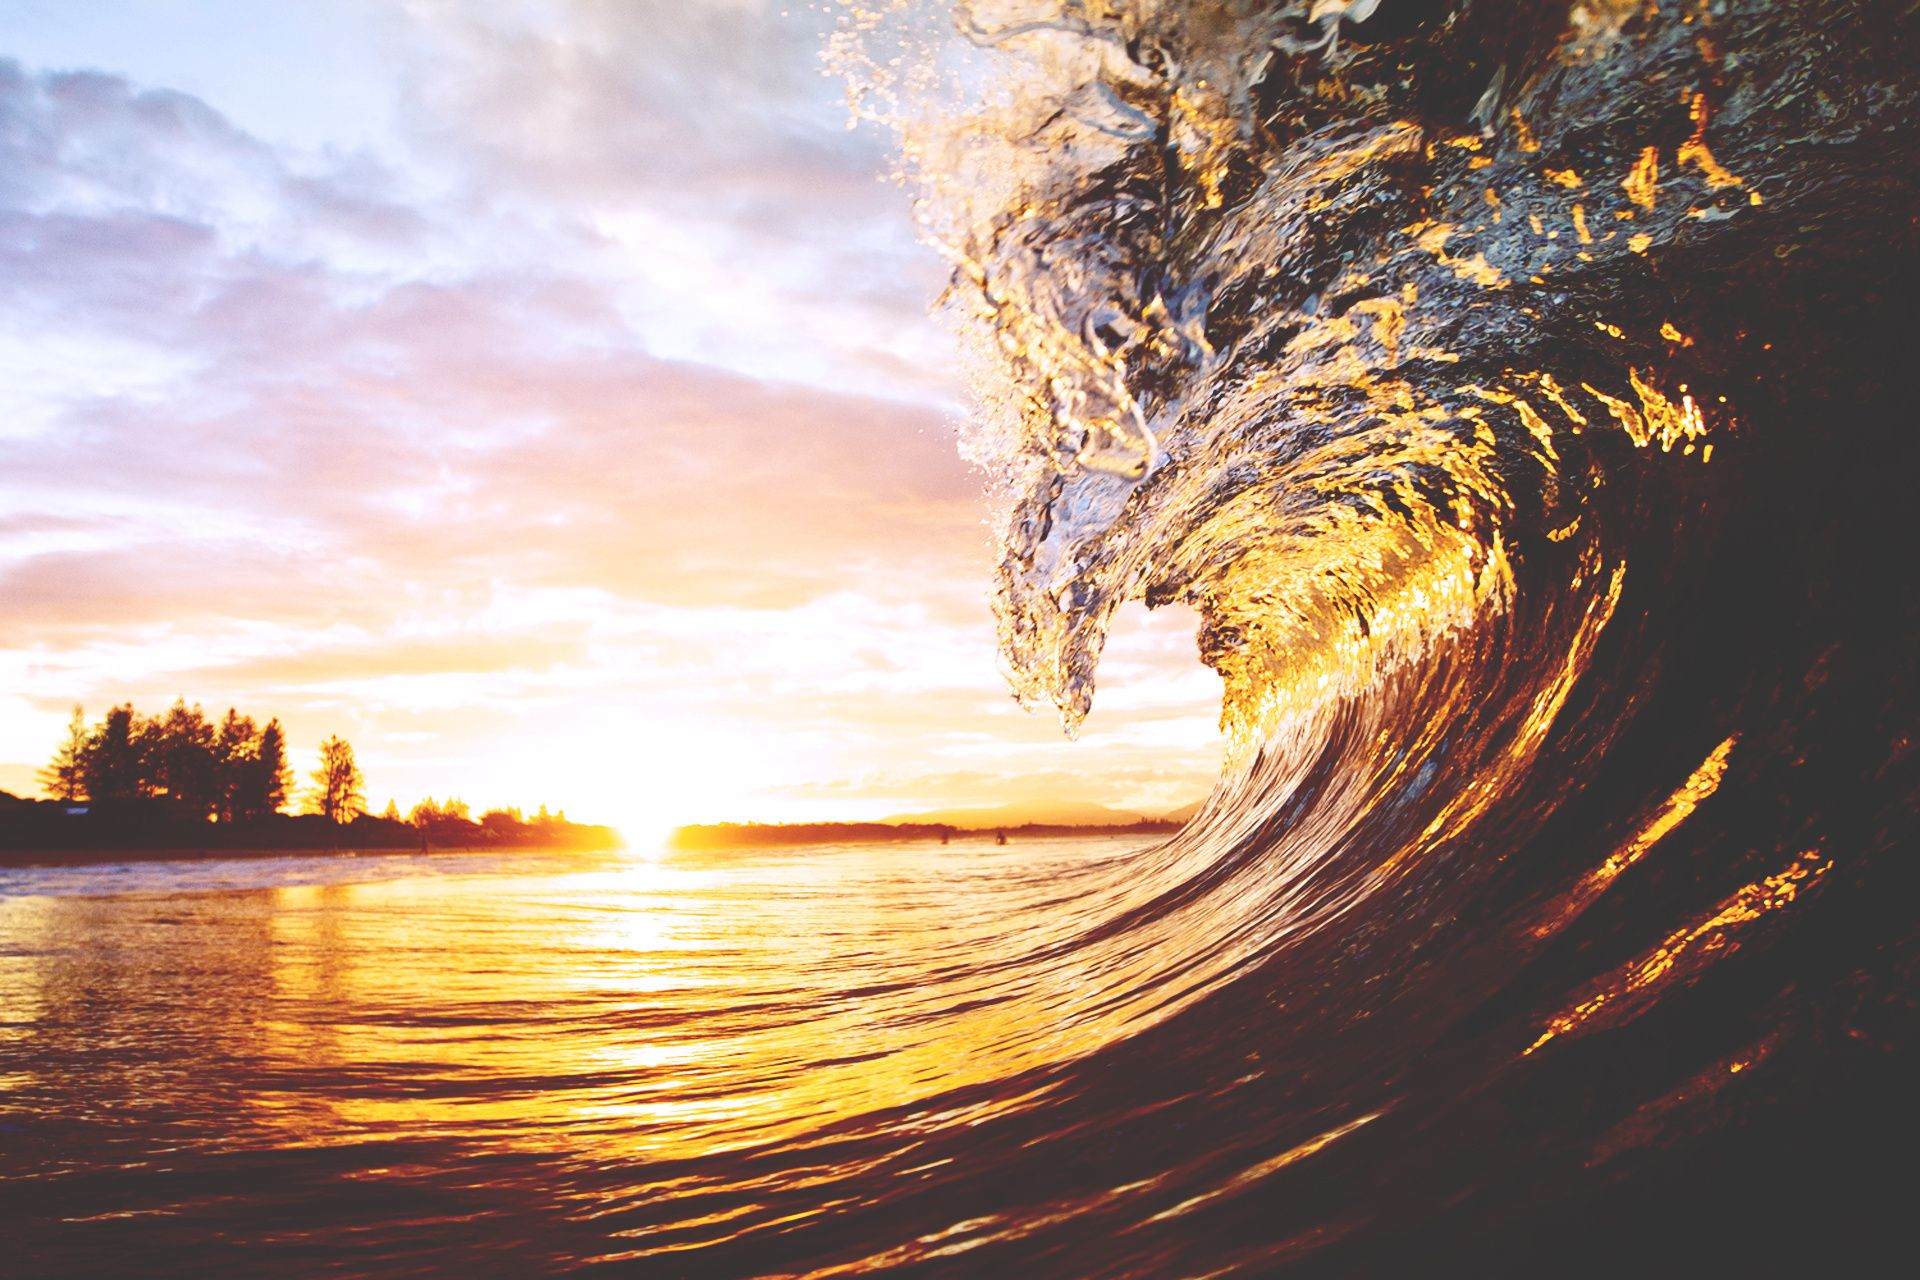 Beautiful Beaches With Waves Latest beach waves wallpapers ...